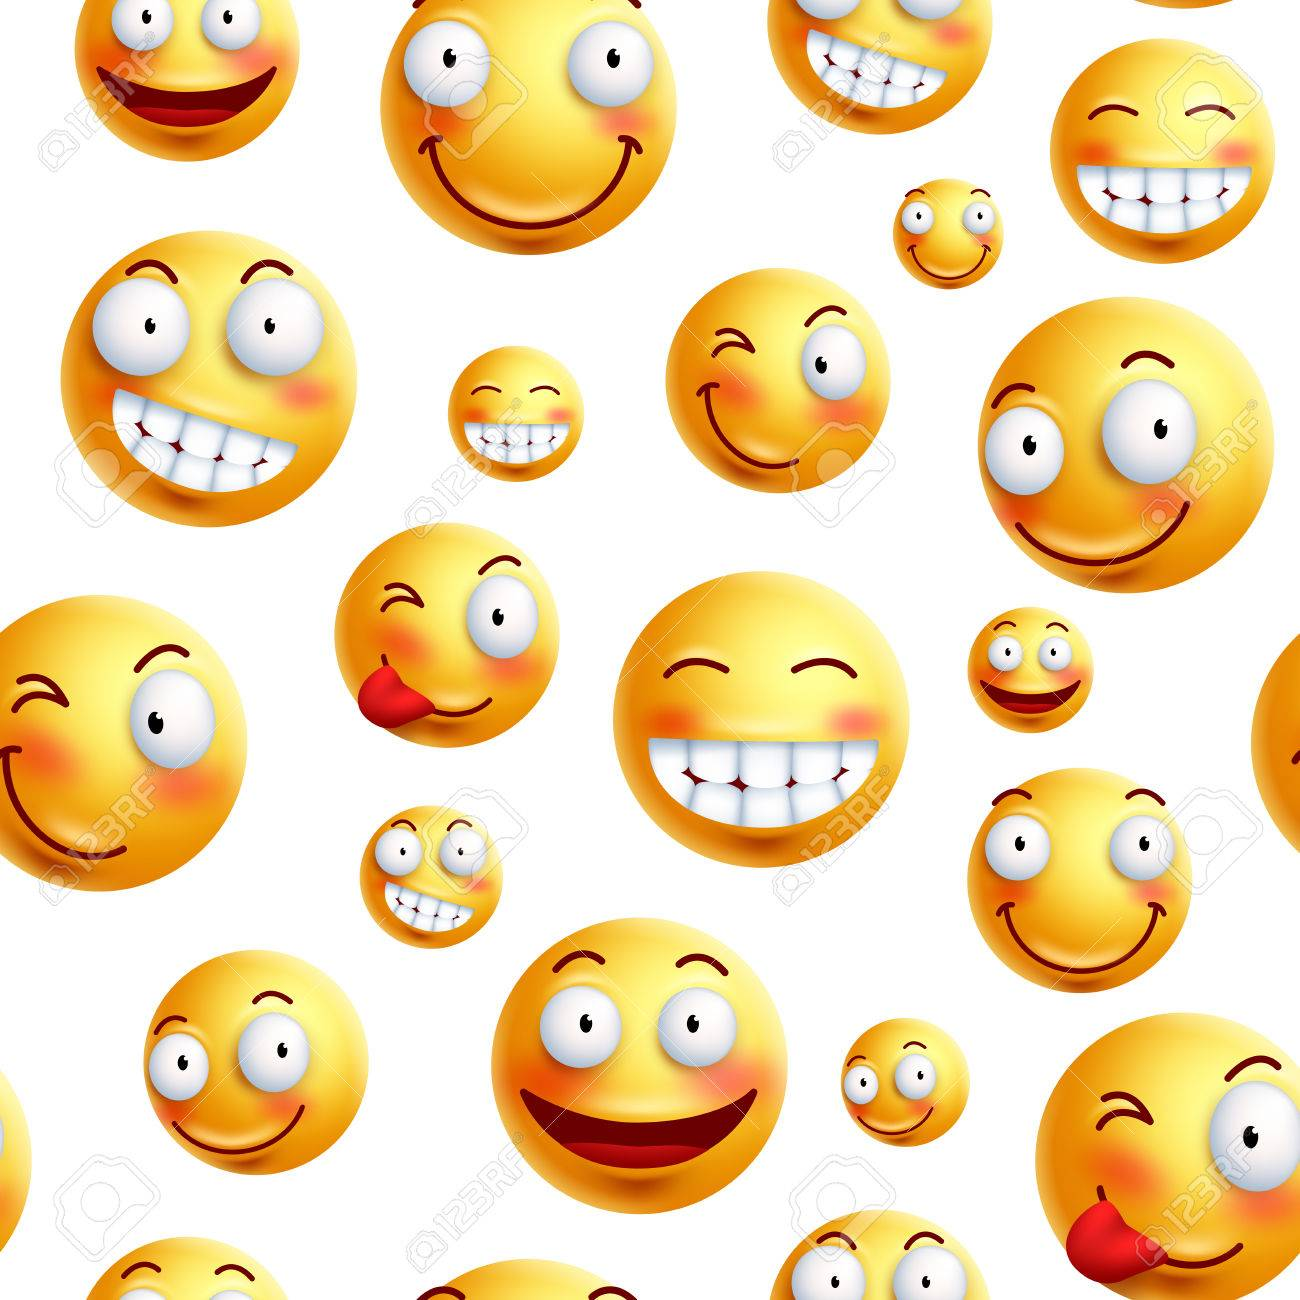 Smiley face pattern vector background continuous endless or smiley face pattern vector background continuous endless or seamless smileys pattern with funny facial voltagebd Image collections